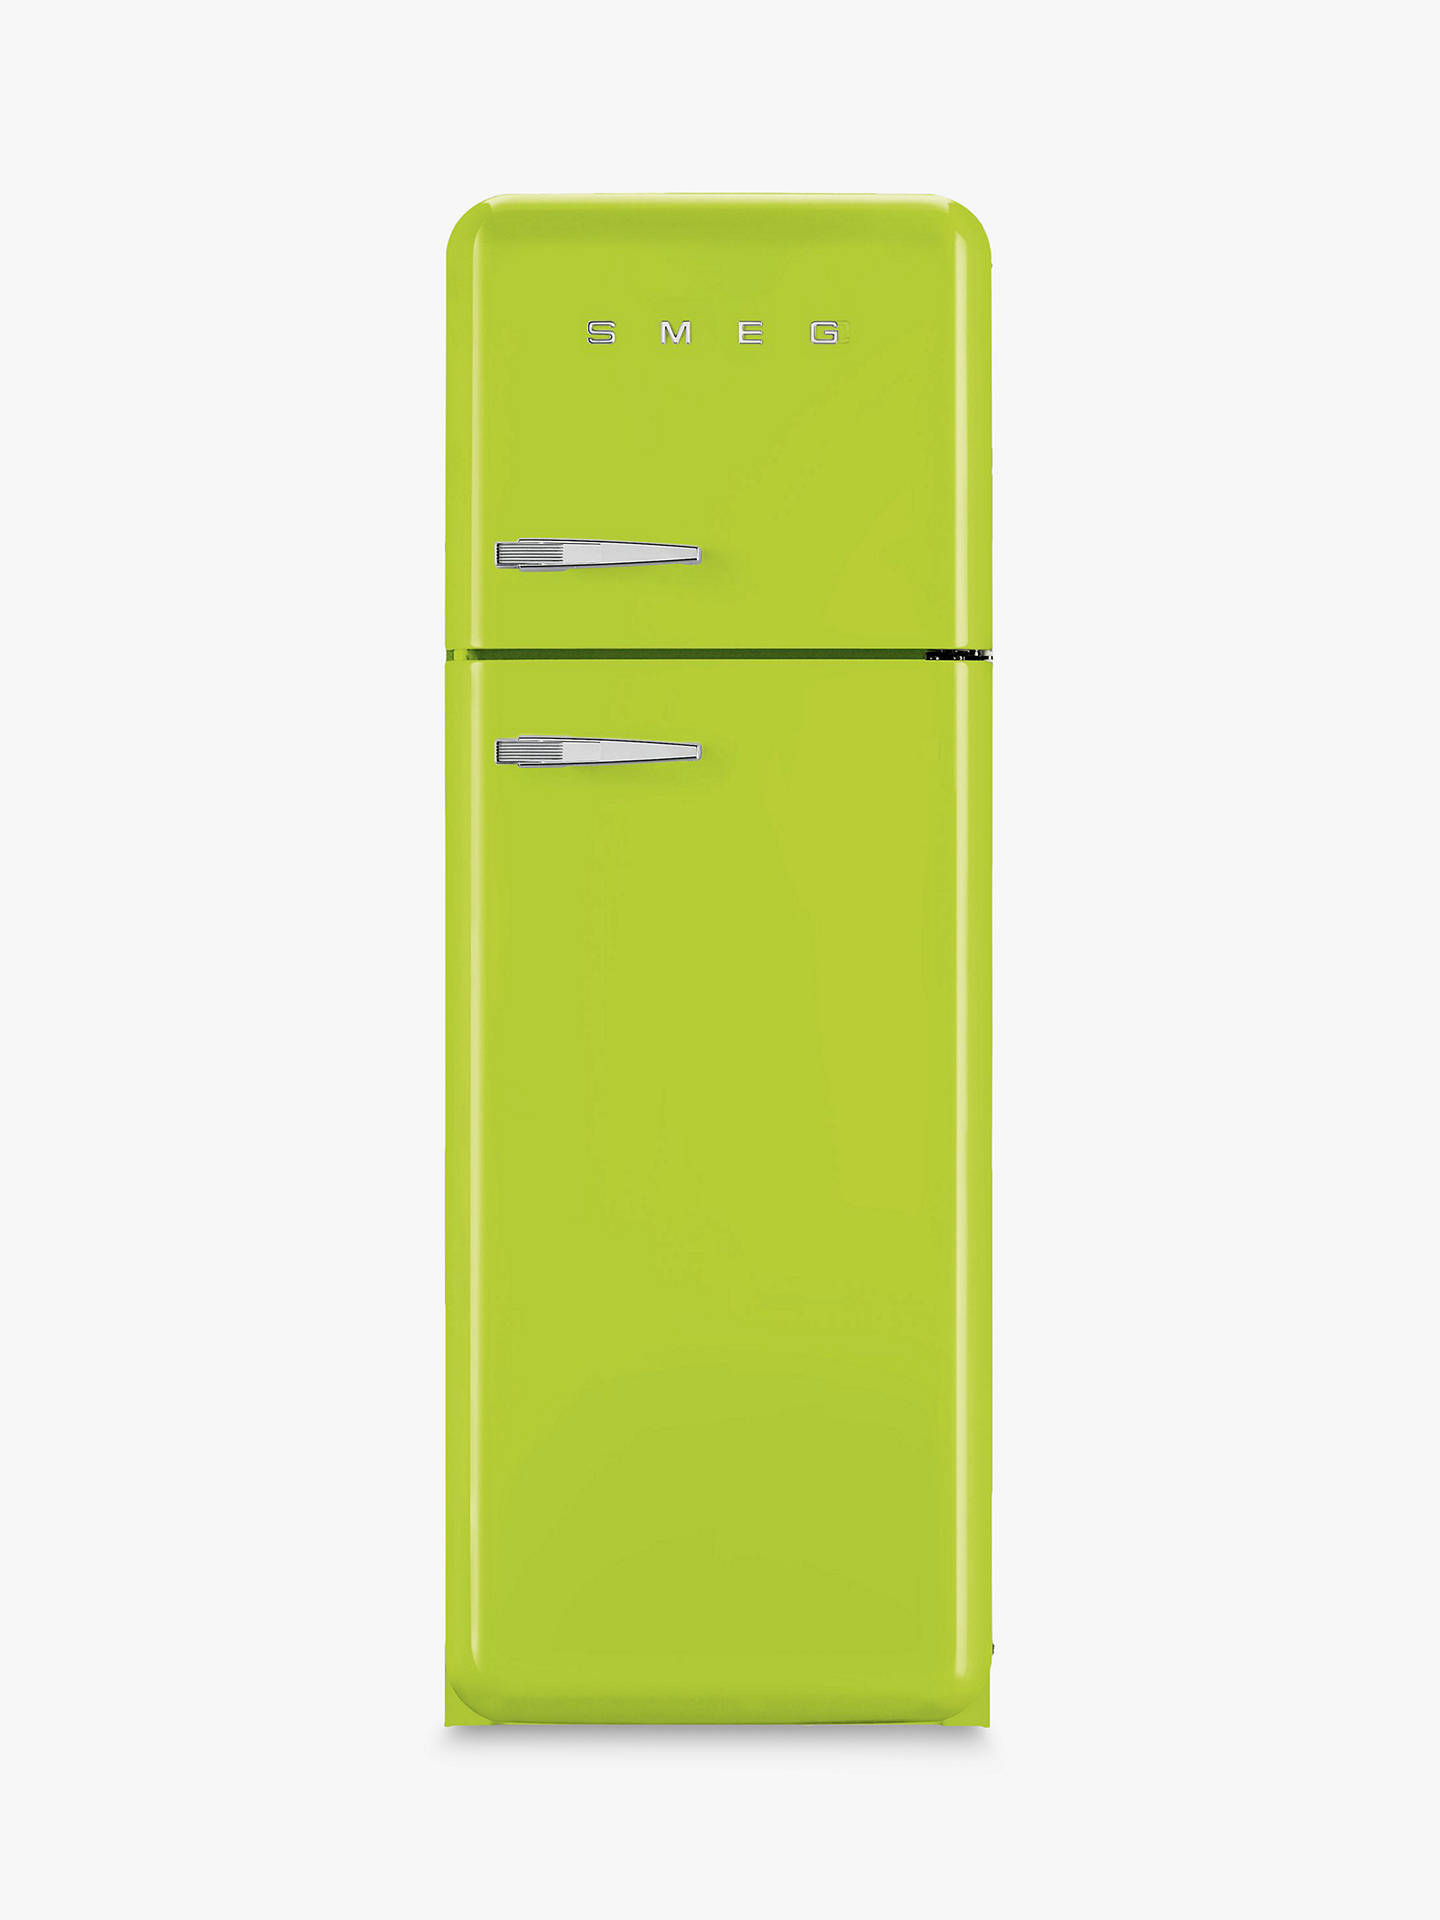 BuySmeg FAB30RF Fridge Freezer, A++ Energy Rating, 60cm Wide, Right-Hand Hinge, Lime Green Online at johnlewis.com